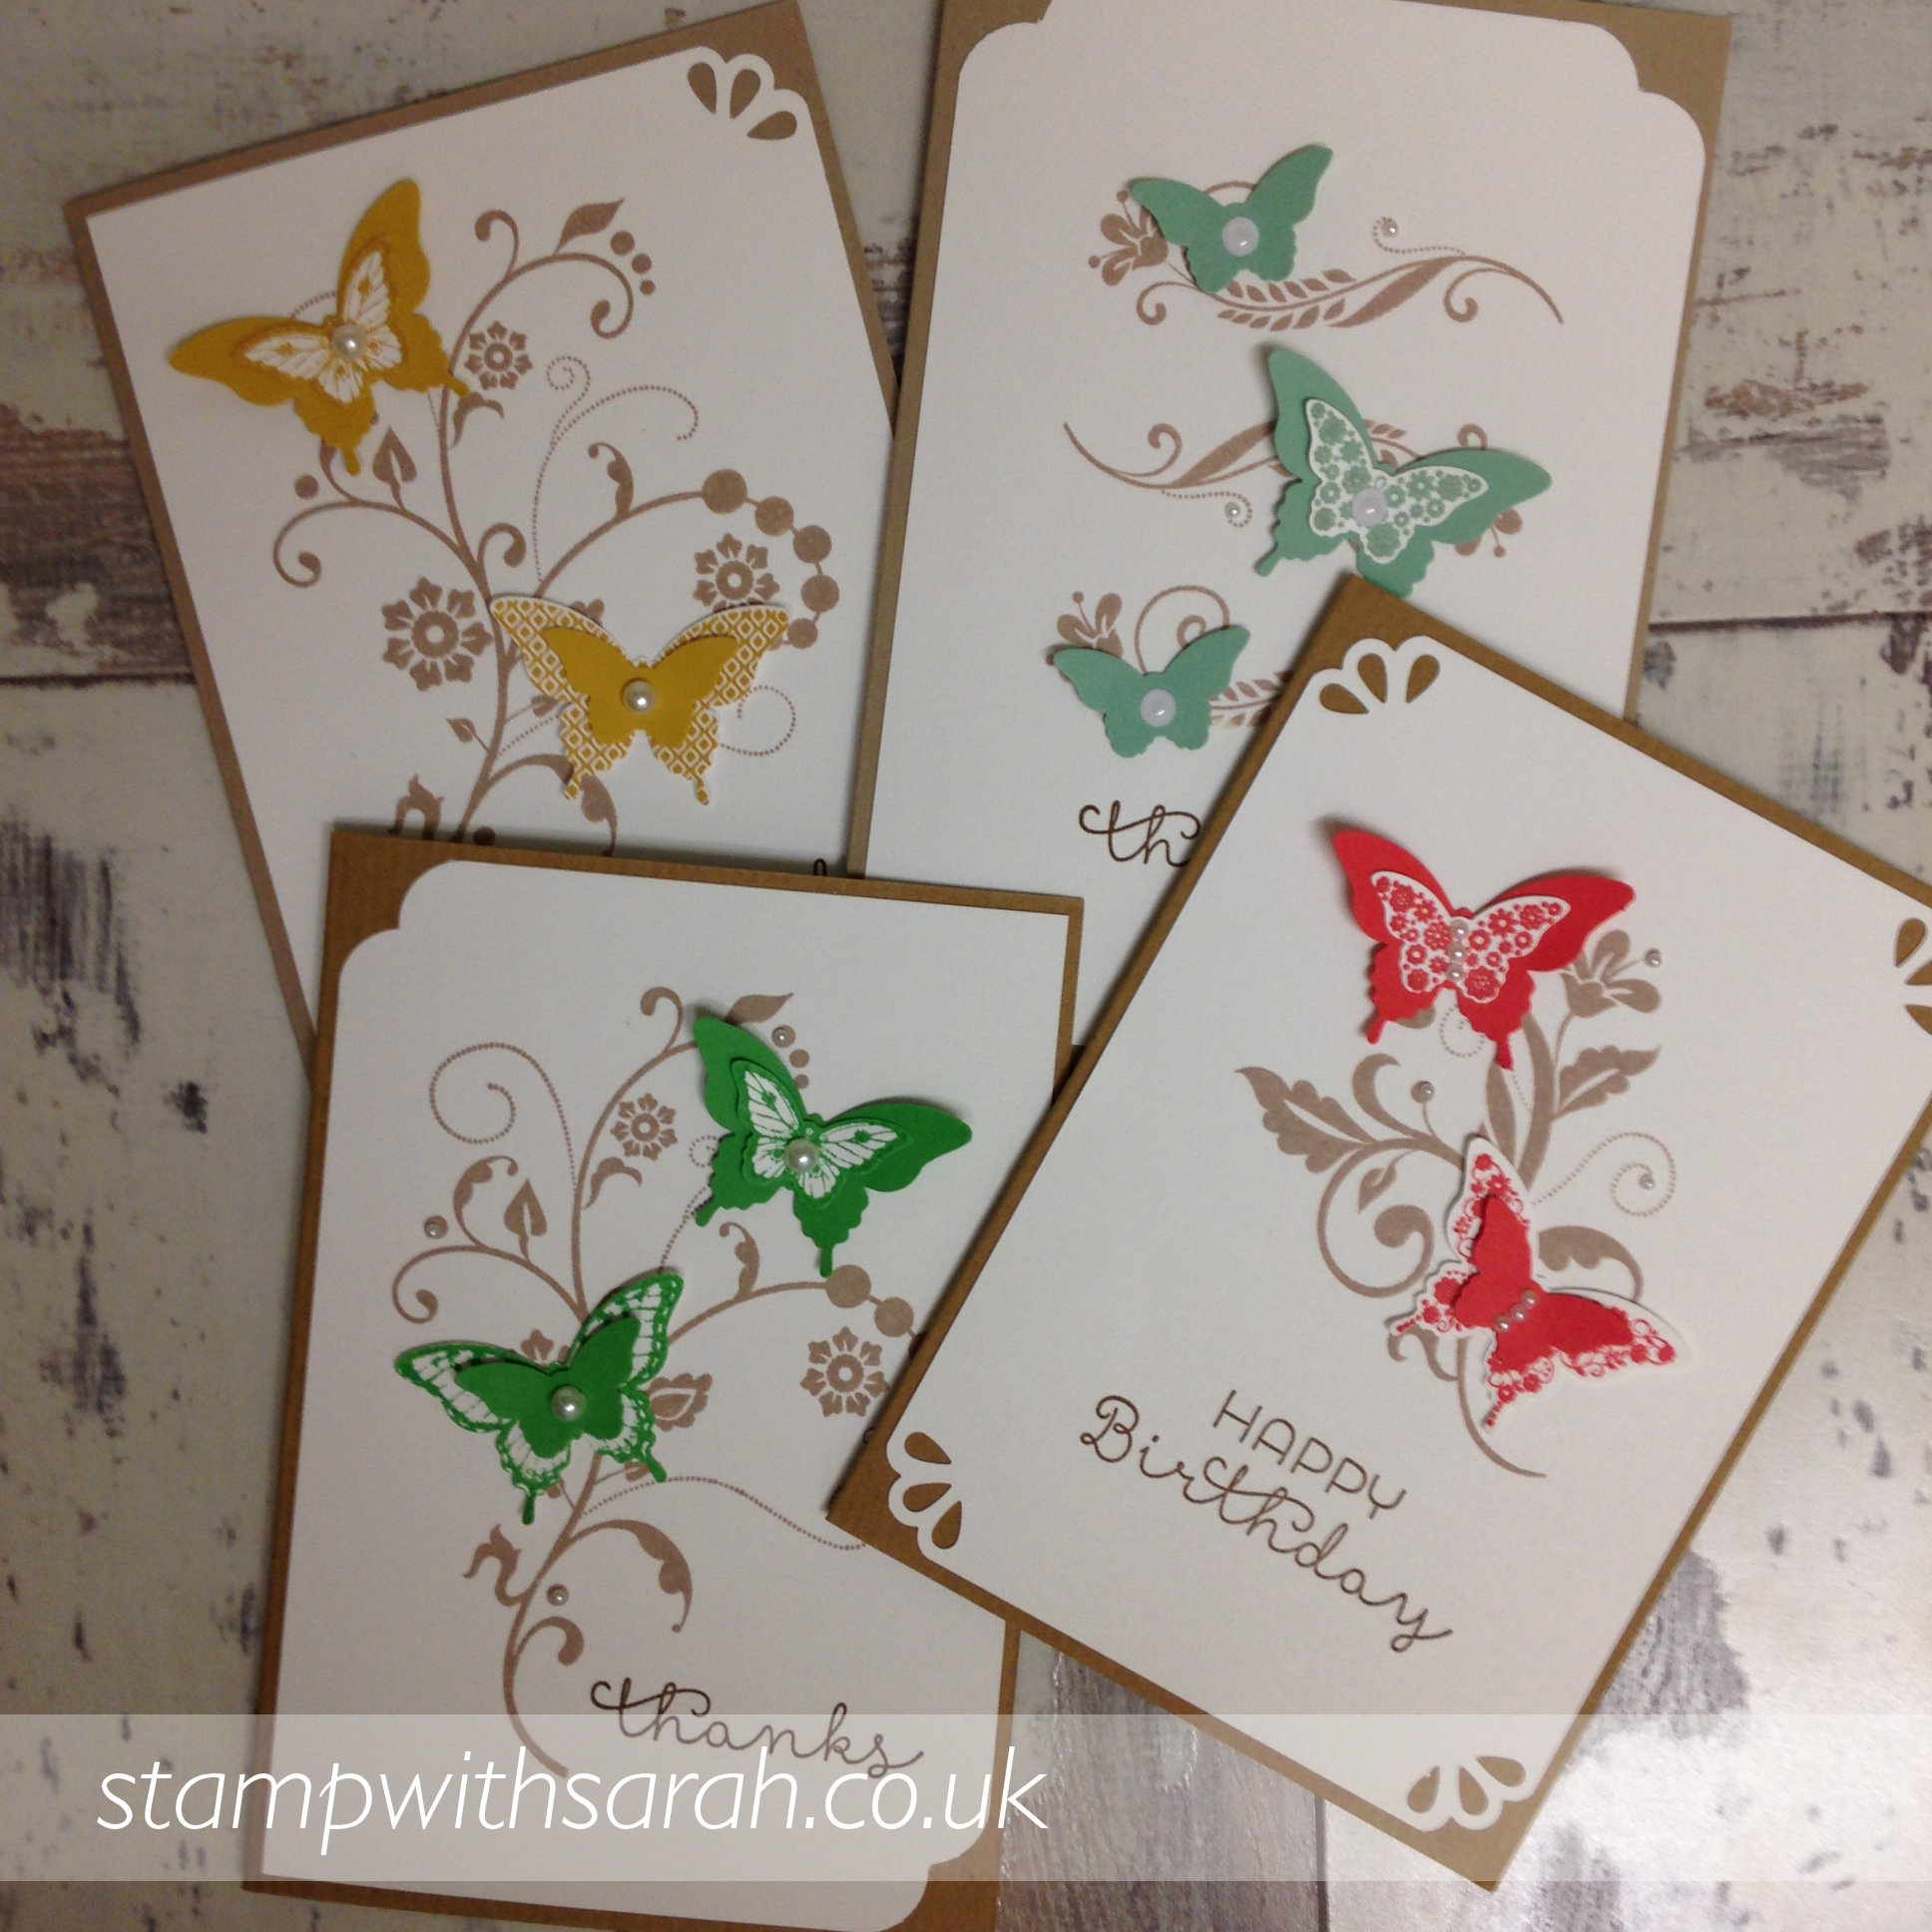 Colour selection made using Papilion Potpourri stamp set by Stampin' Up!